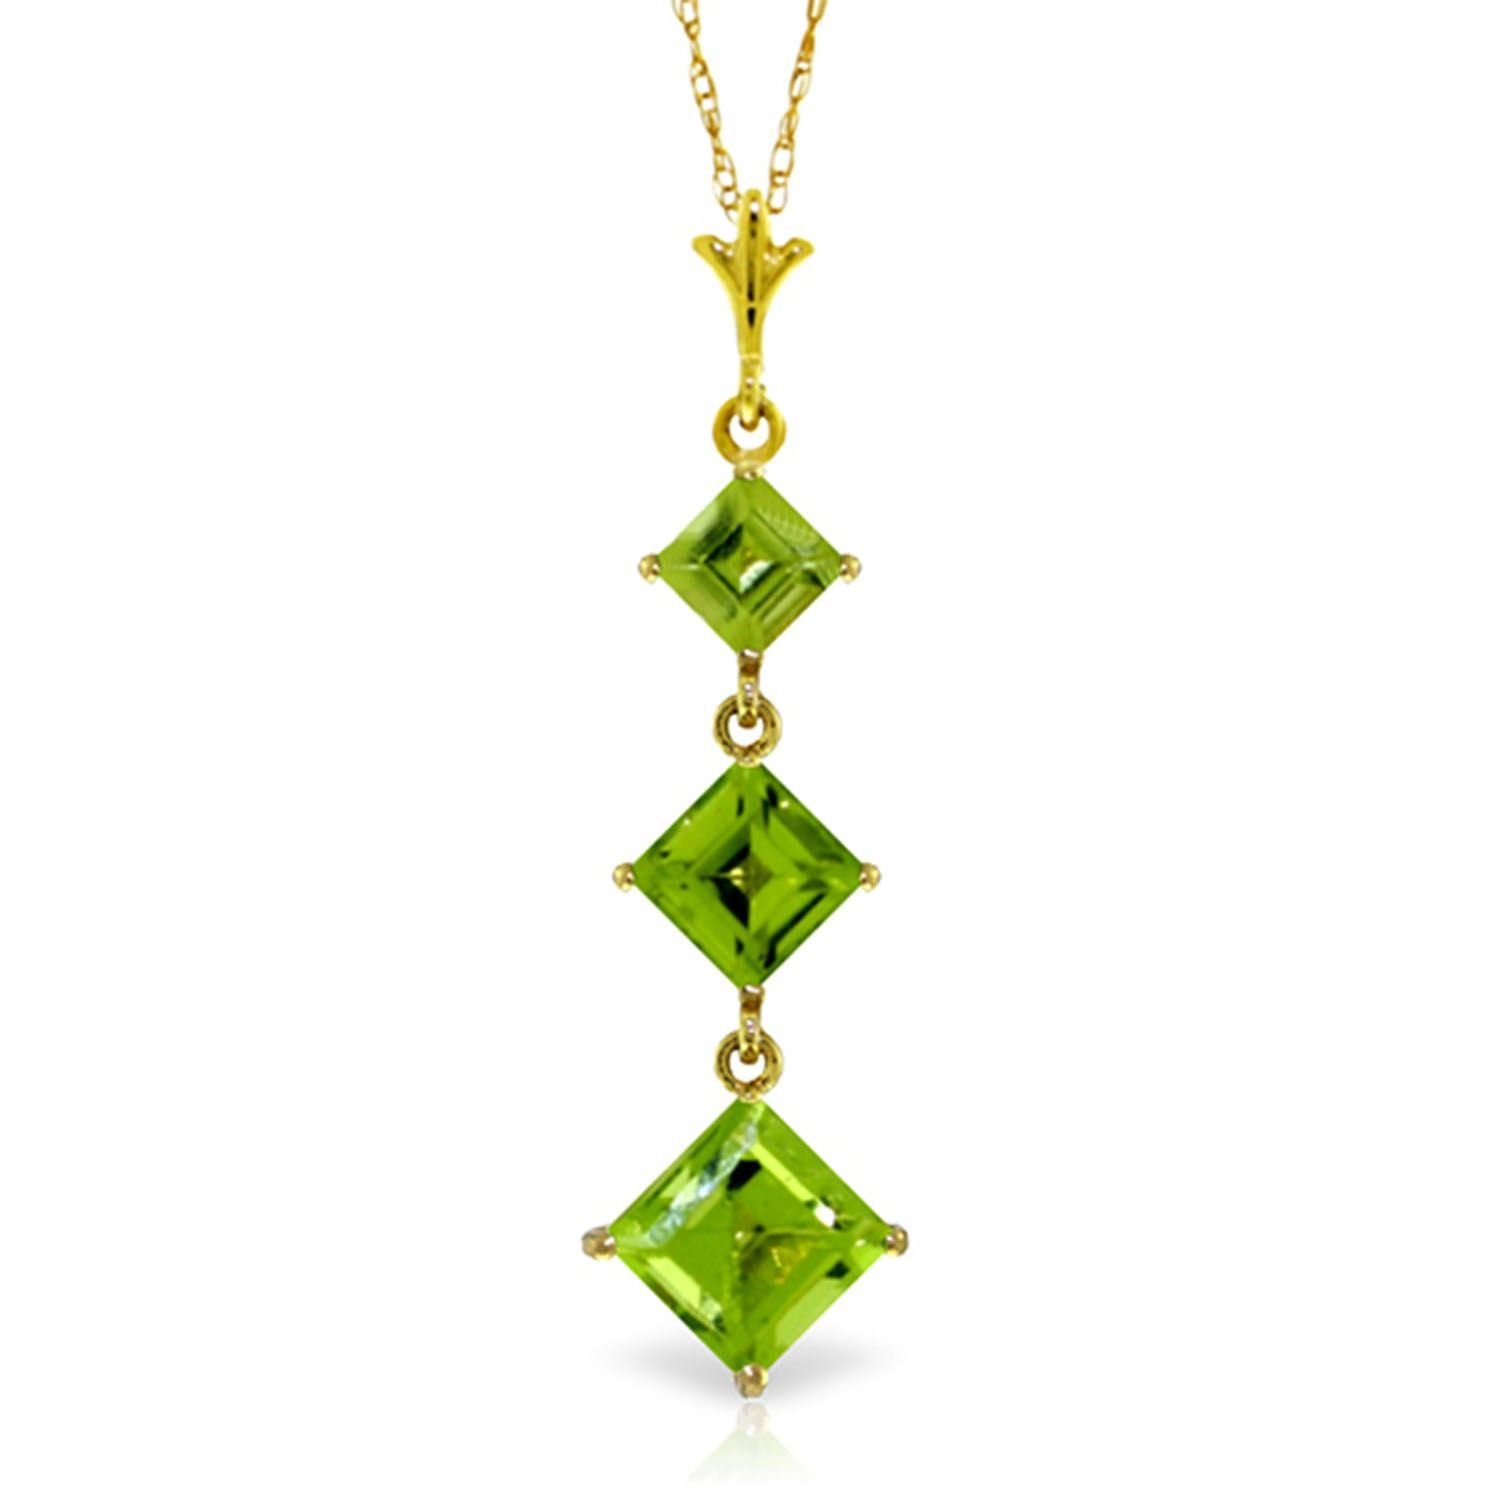 ALARRI 2.4 CTW 14K Solid Gold Seal Your Love Peridot Necklace with 18 Inch Chain Length